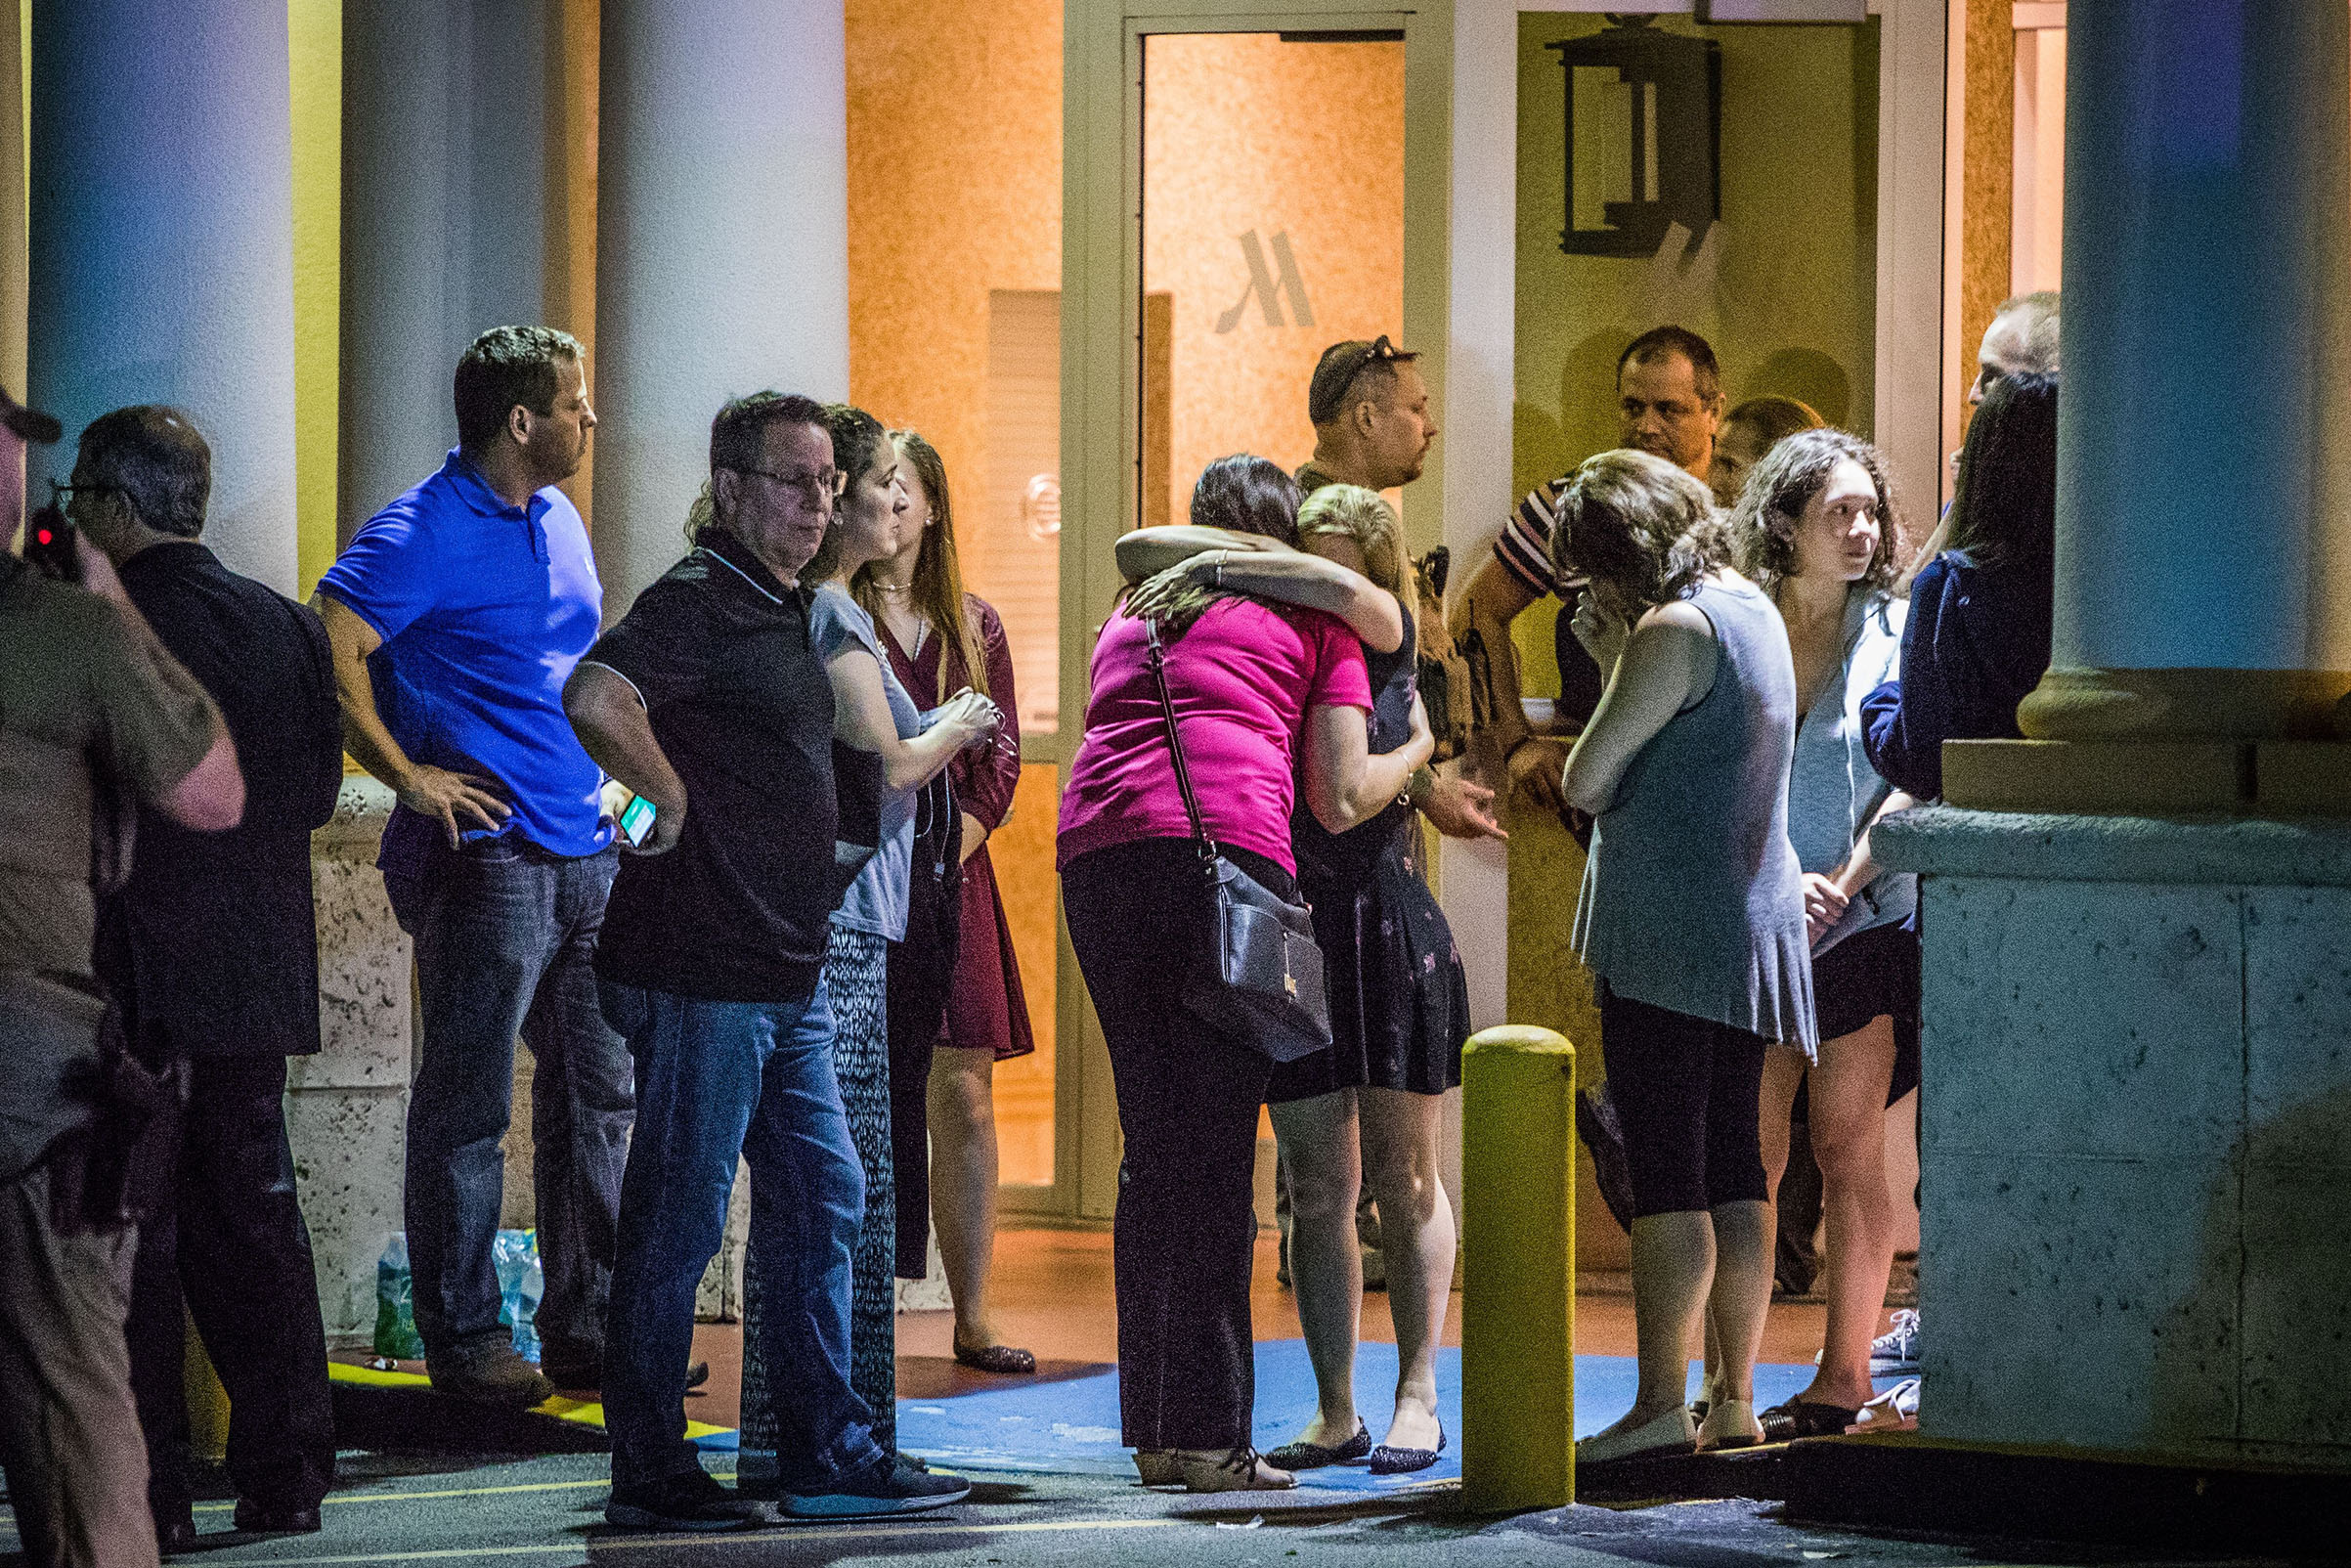 The FBI and police agencies from surrounding counties responded to a mass shooting at Marjory Stoneman Douglas High in Parkland, Fla on Feb. 14, 2018.